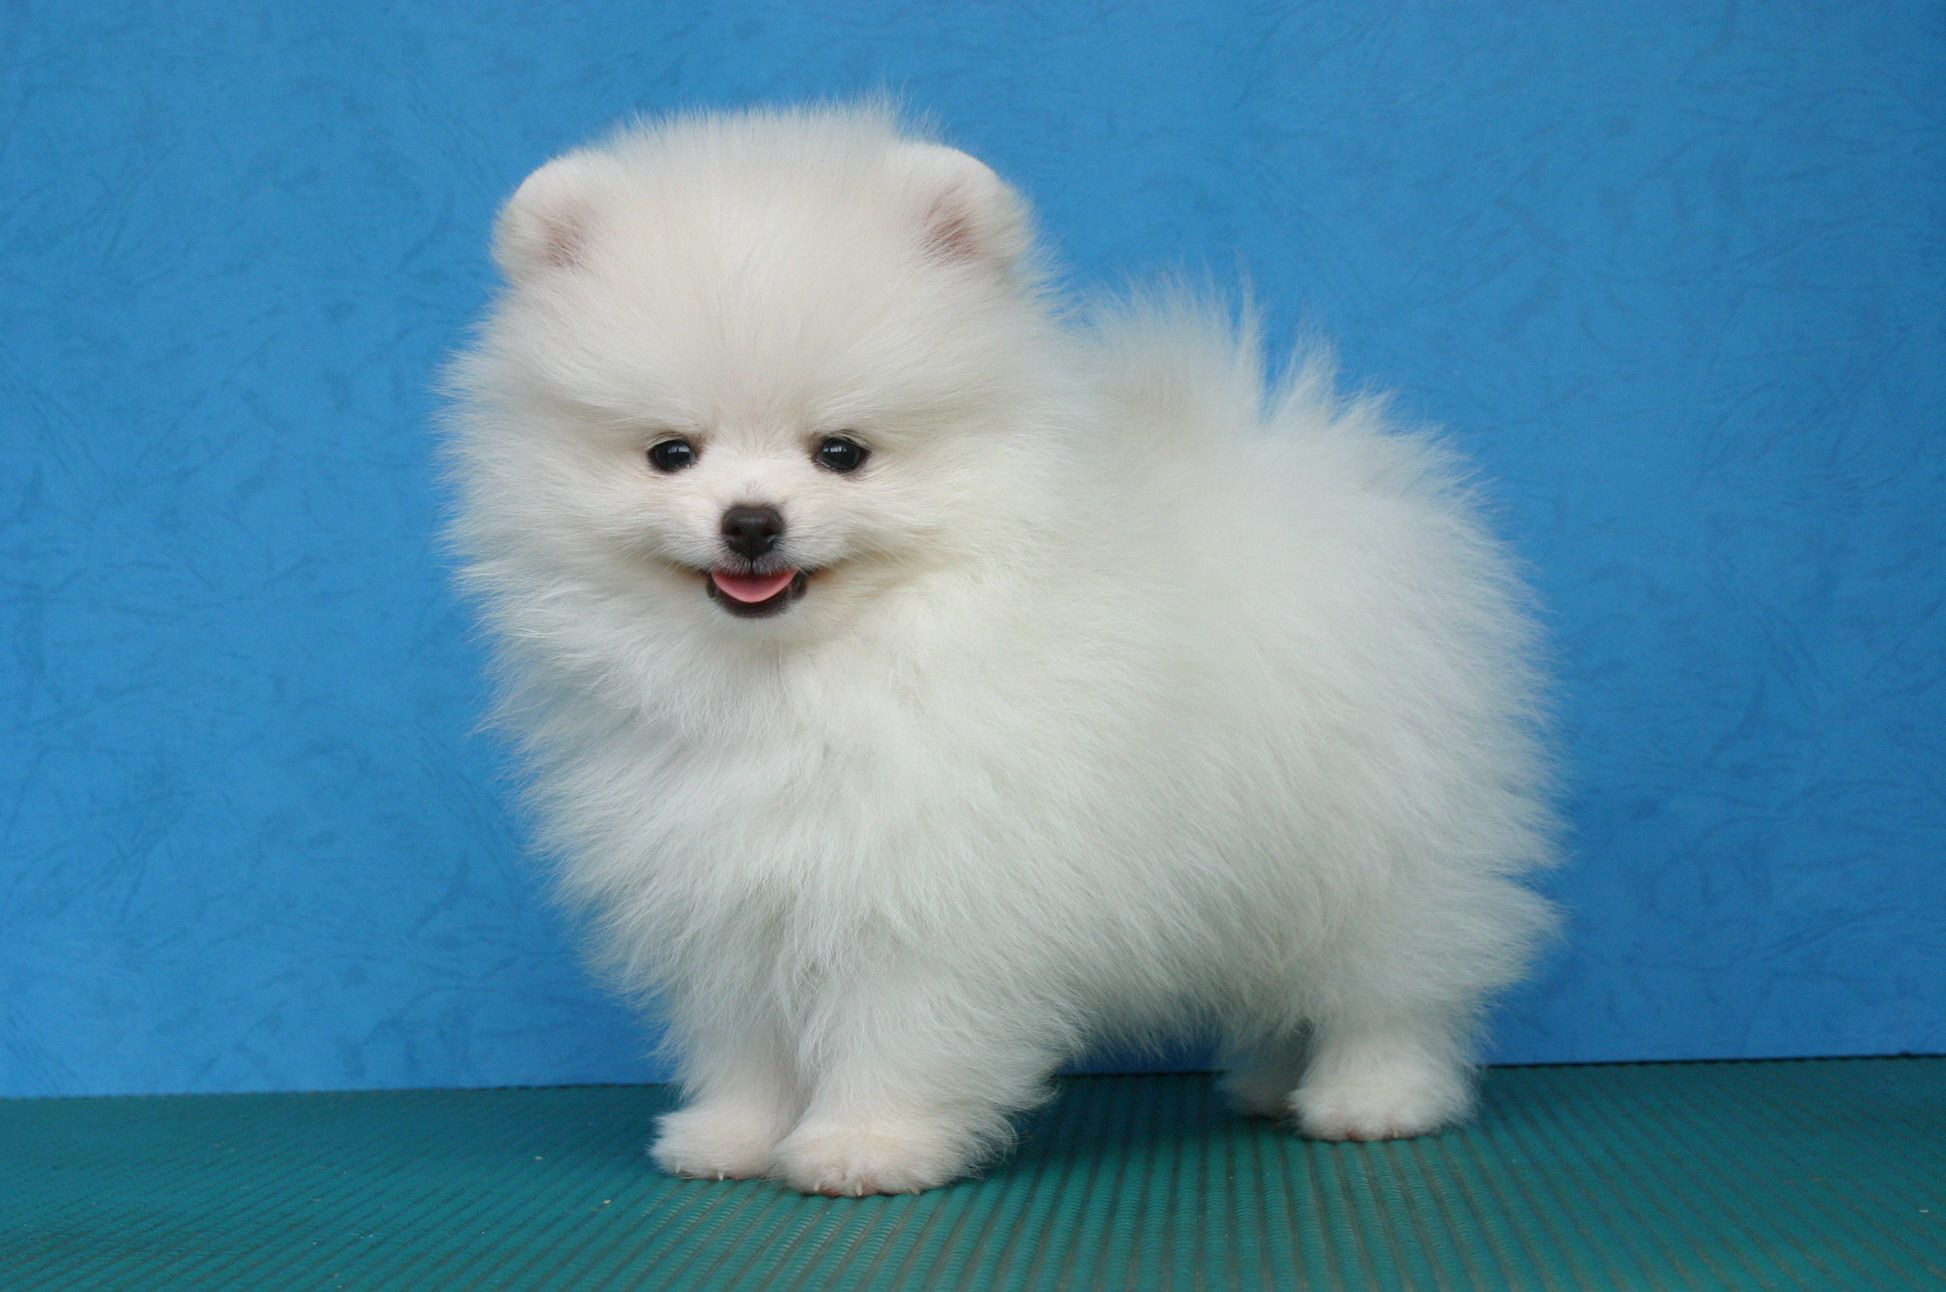 White Pomeranian Puppies For Sale Uk White Pomeranian Puppies Pomeranian Puppy Pomeranian Puppy Teacup